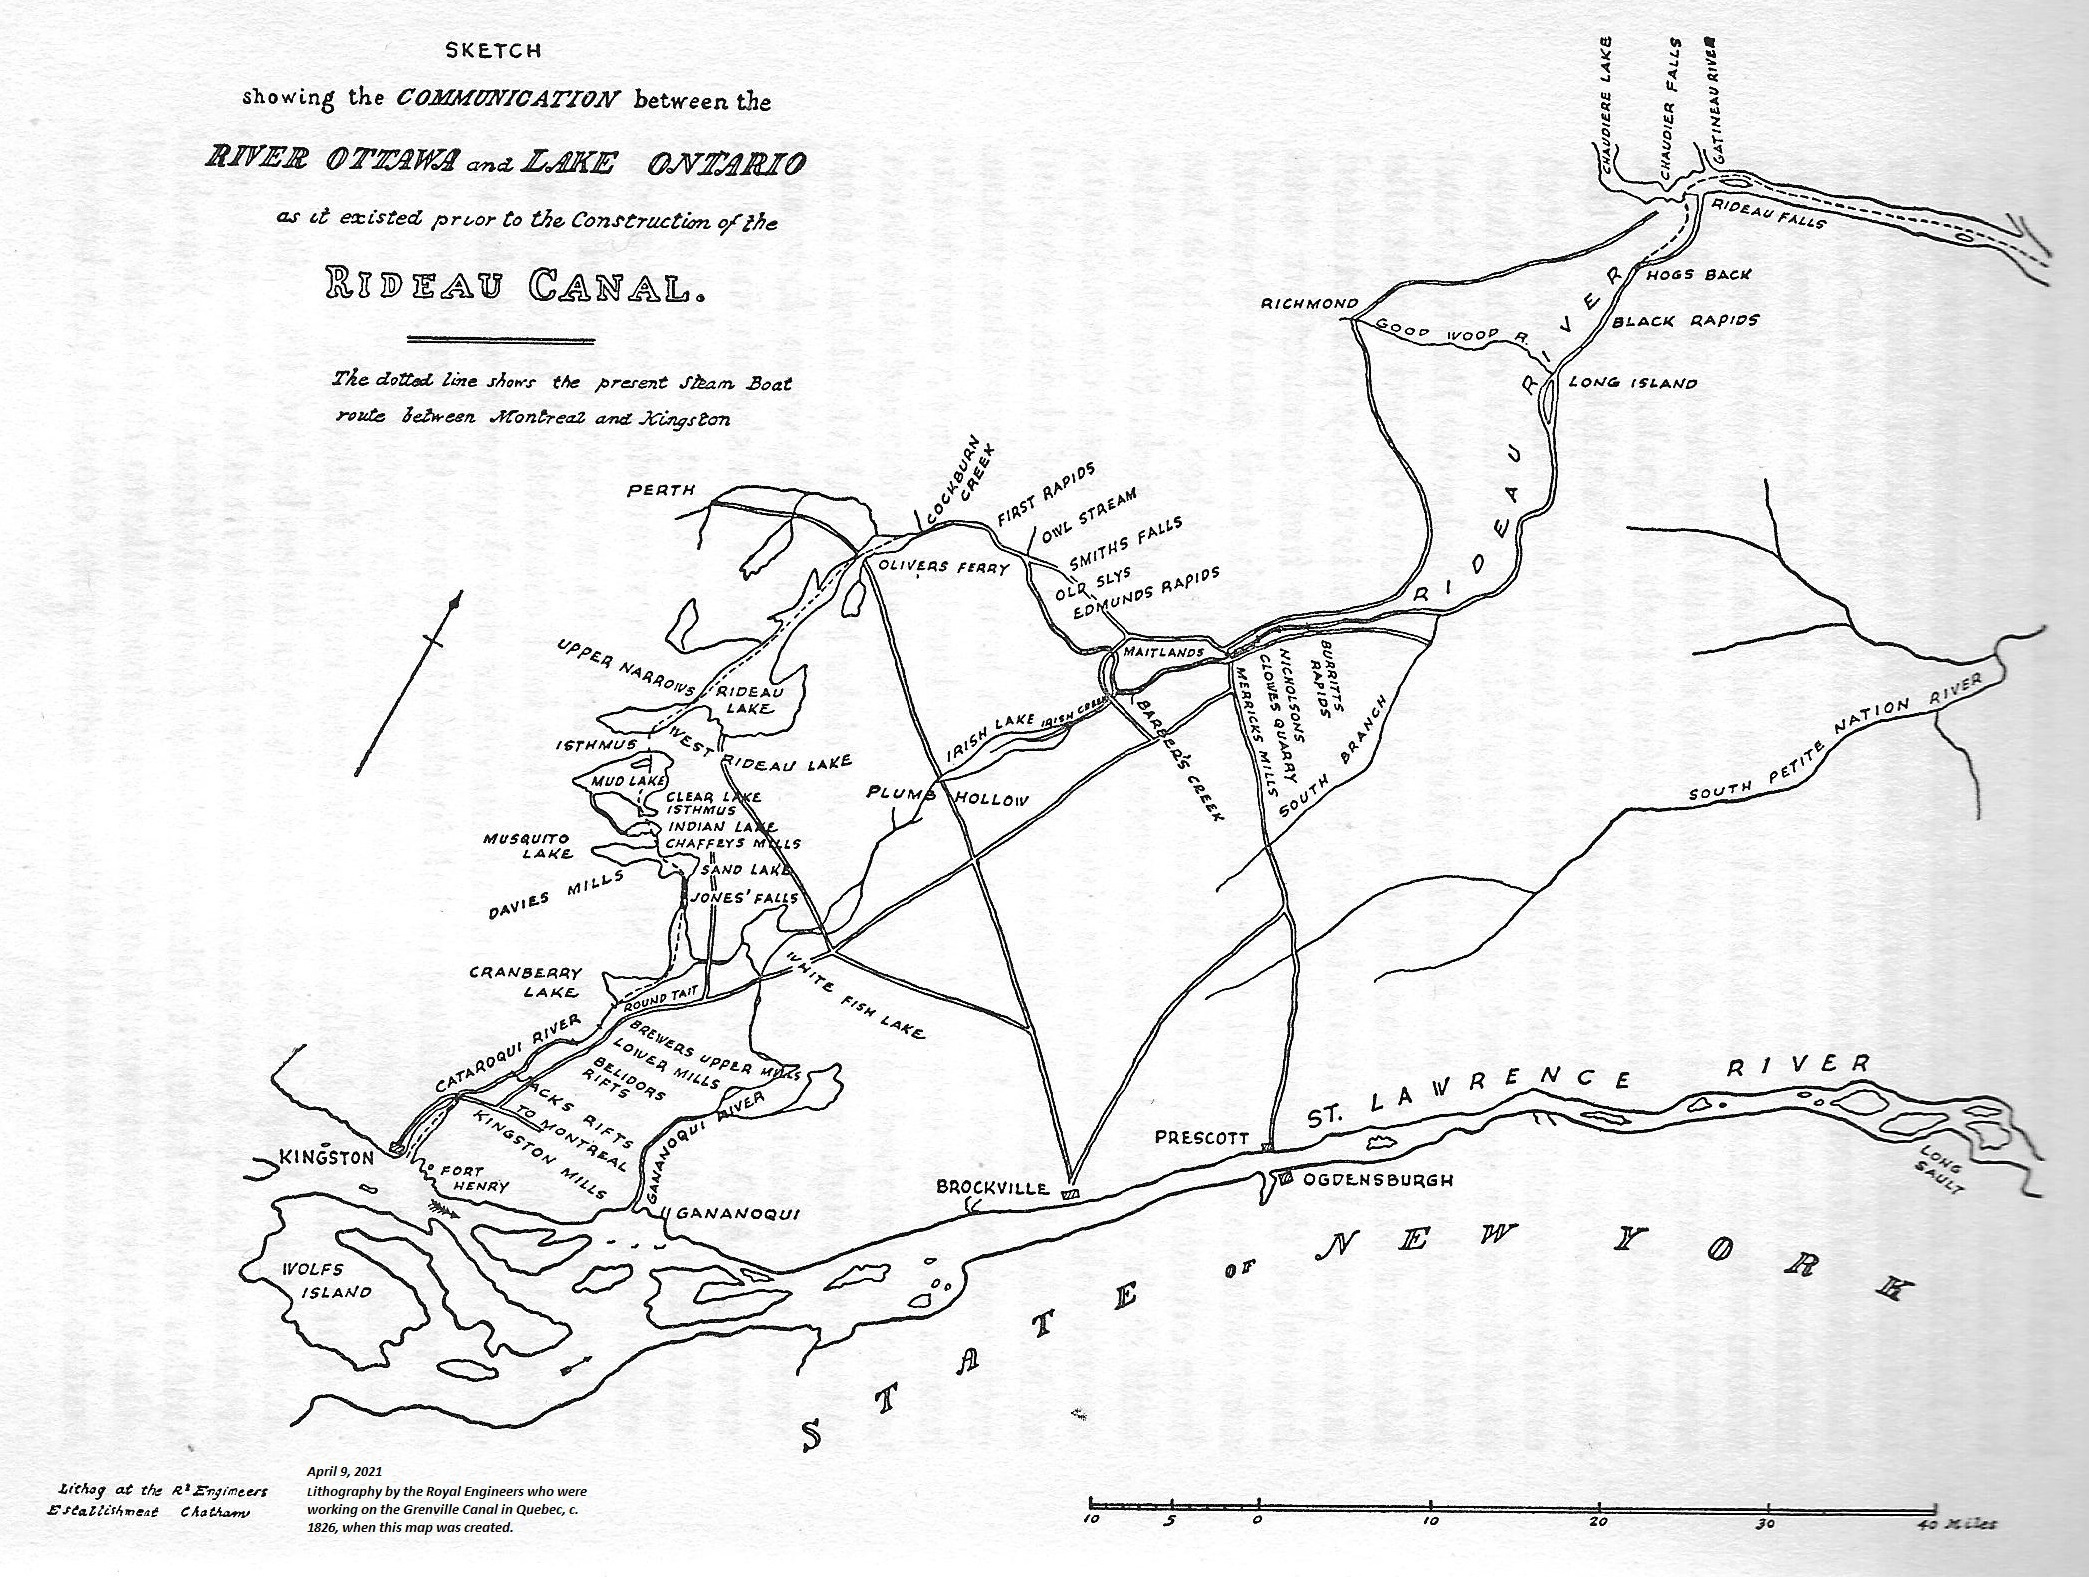 Canal Map, 1826, by the Royal Engineers from Text Book